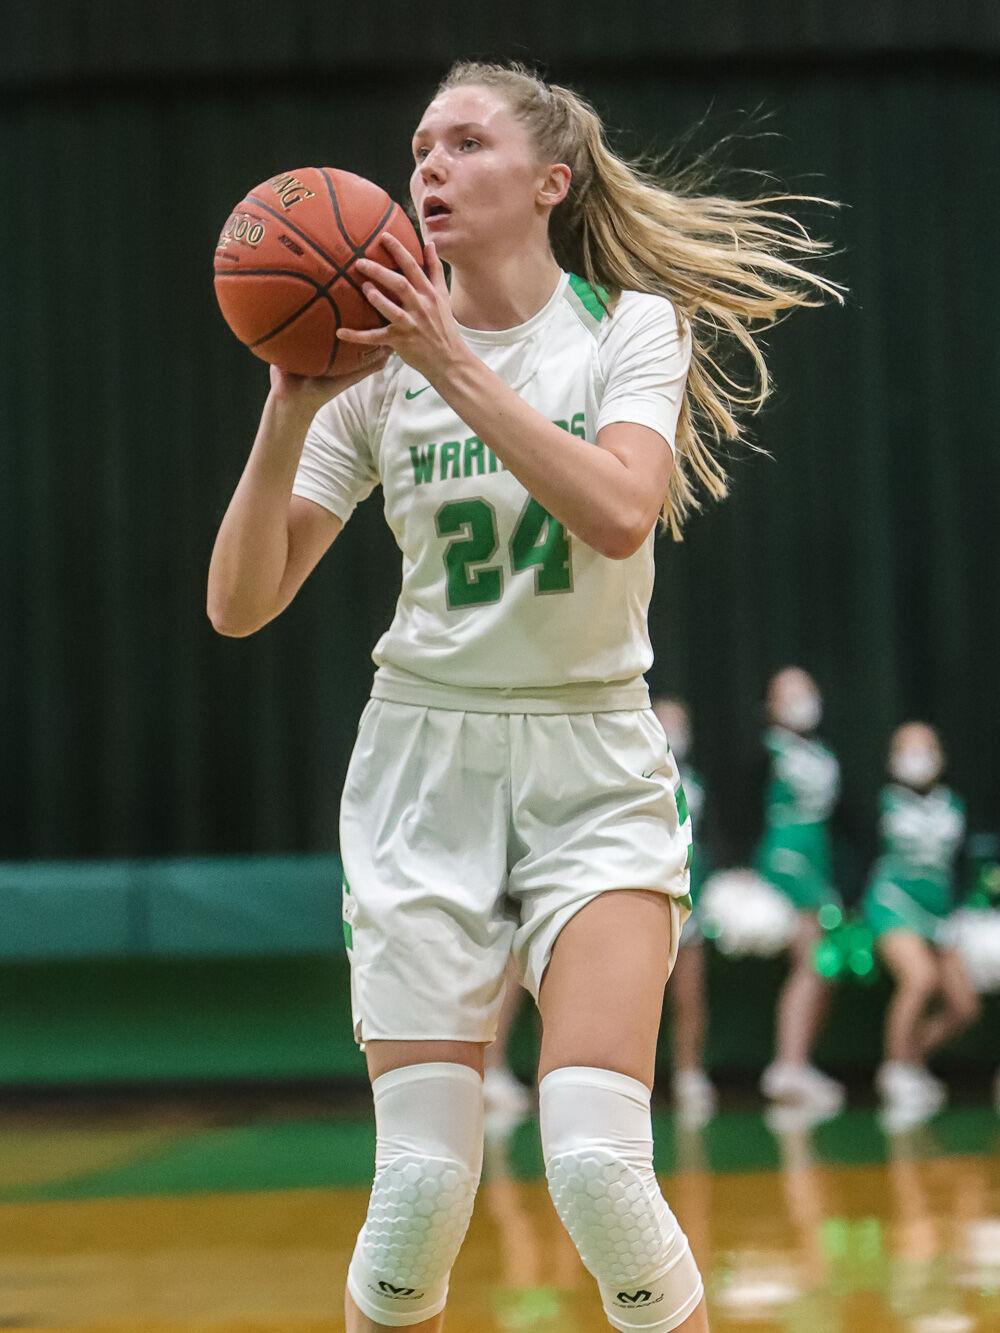 Courier-Tribune 2020-21 All-Area Girls Basketball Teams